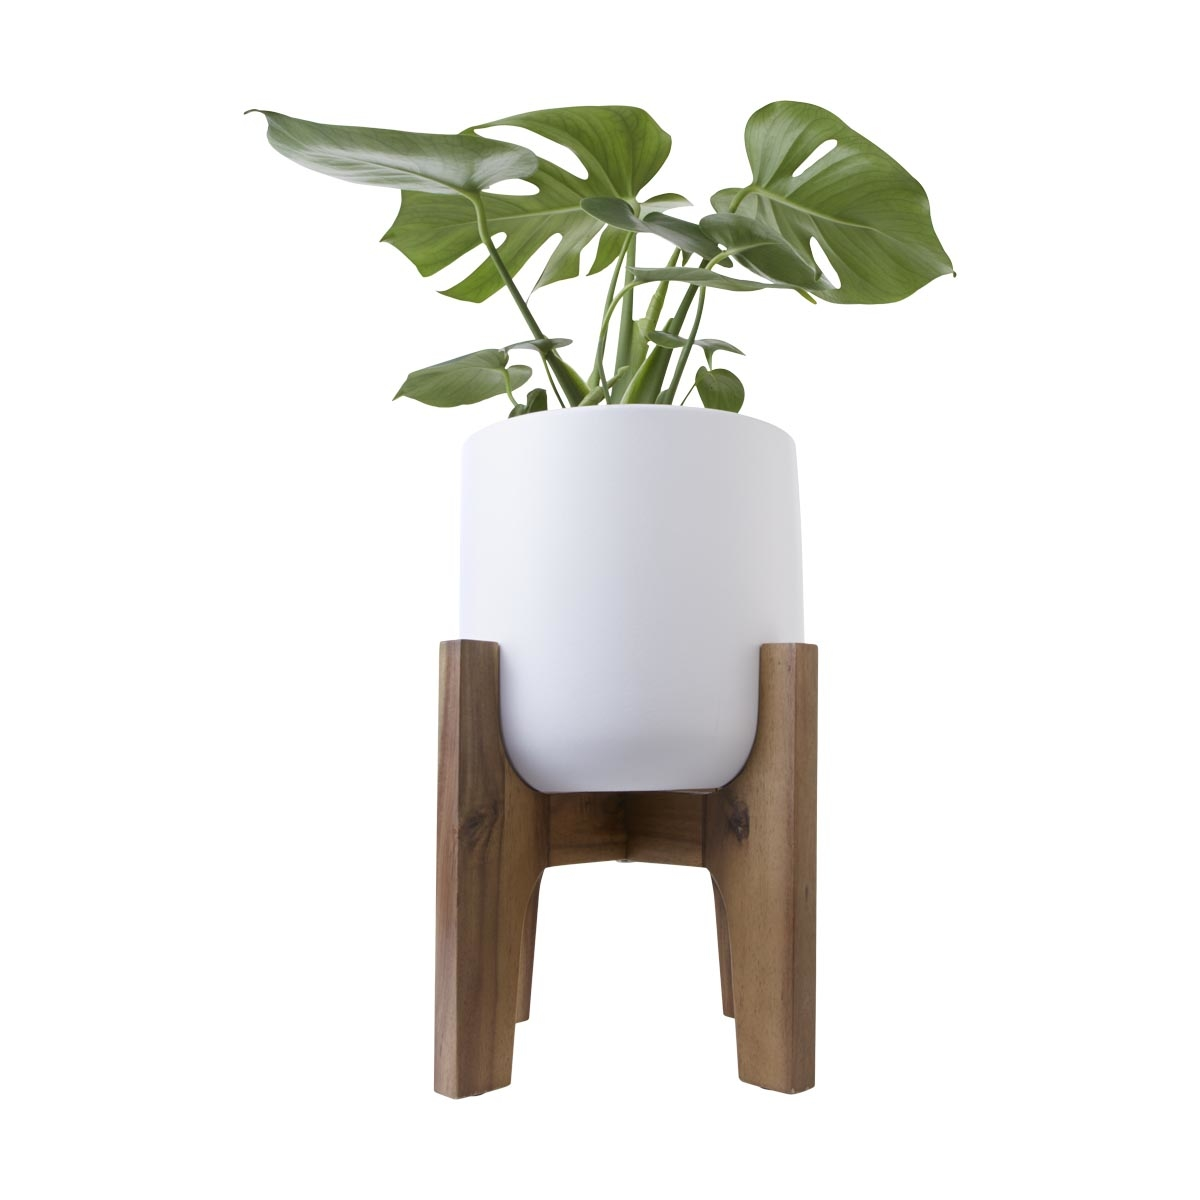 Pot with Acacia Stand Kmart home, Kmart decor, Cool